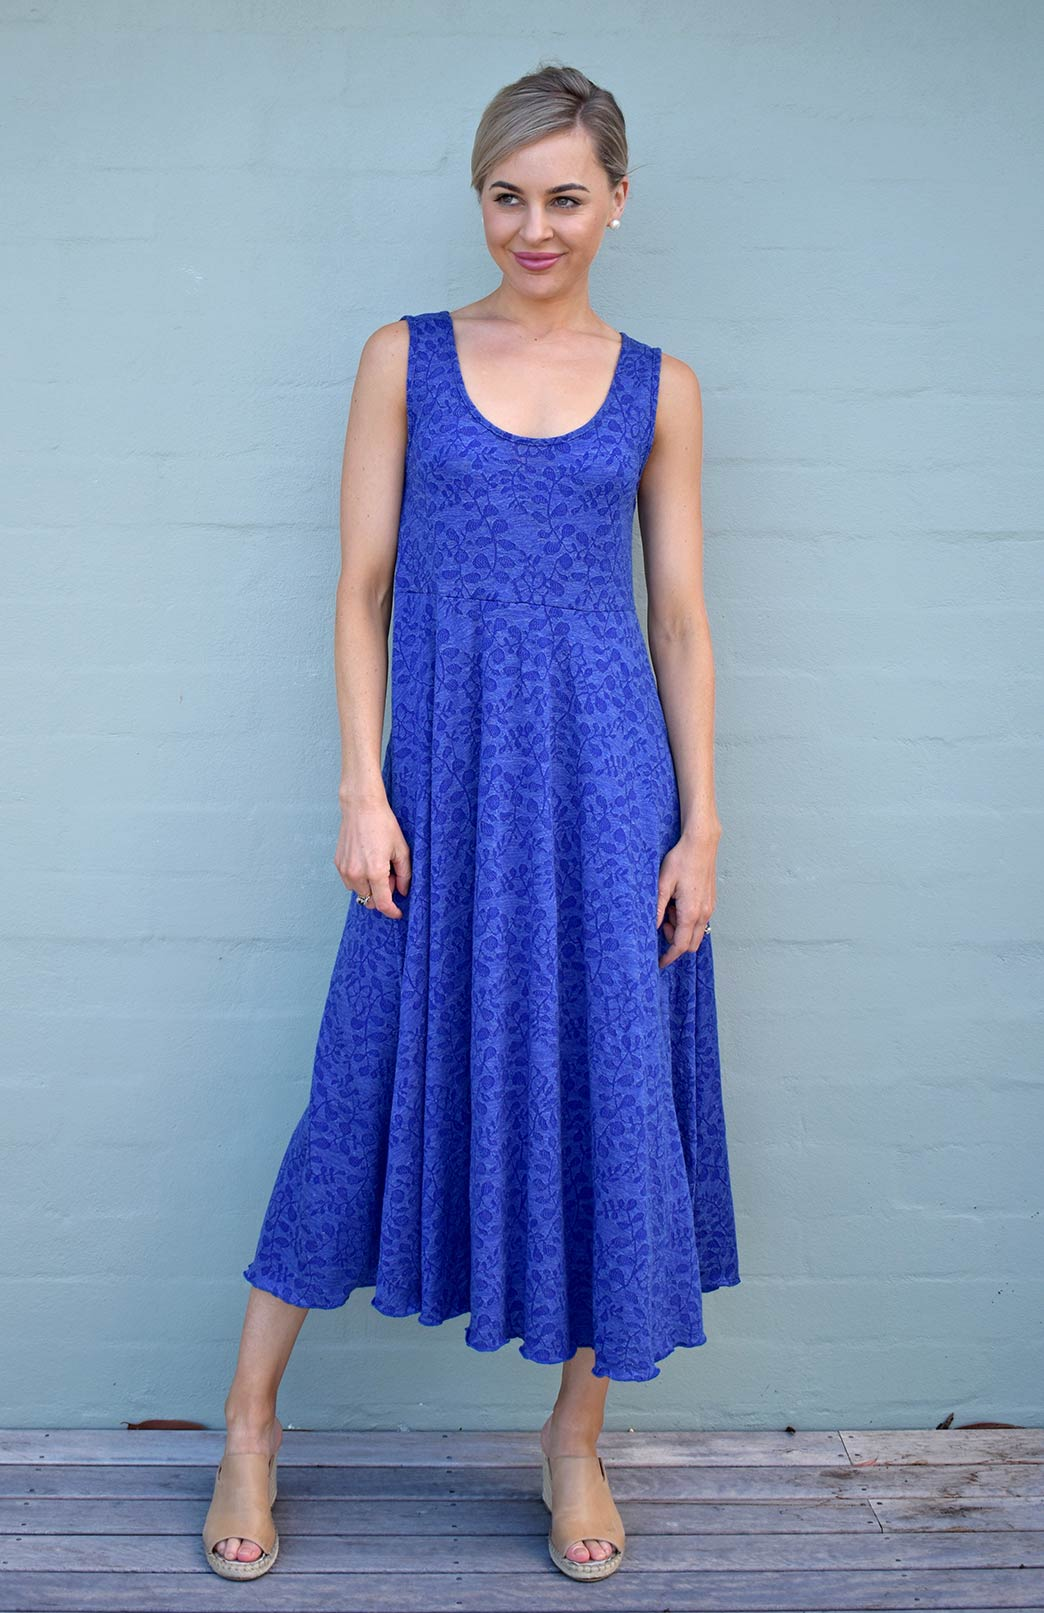 Fan Dress - Women's Merino Wool Royal Blue Floral Fan Dress with Empire Waistline and Flared Skirt - Smitten Merino Tasmania Australia